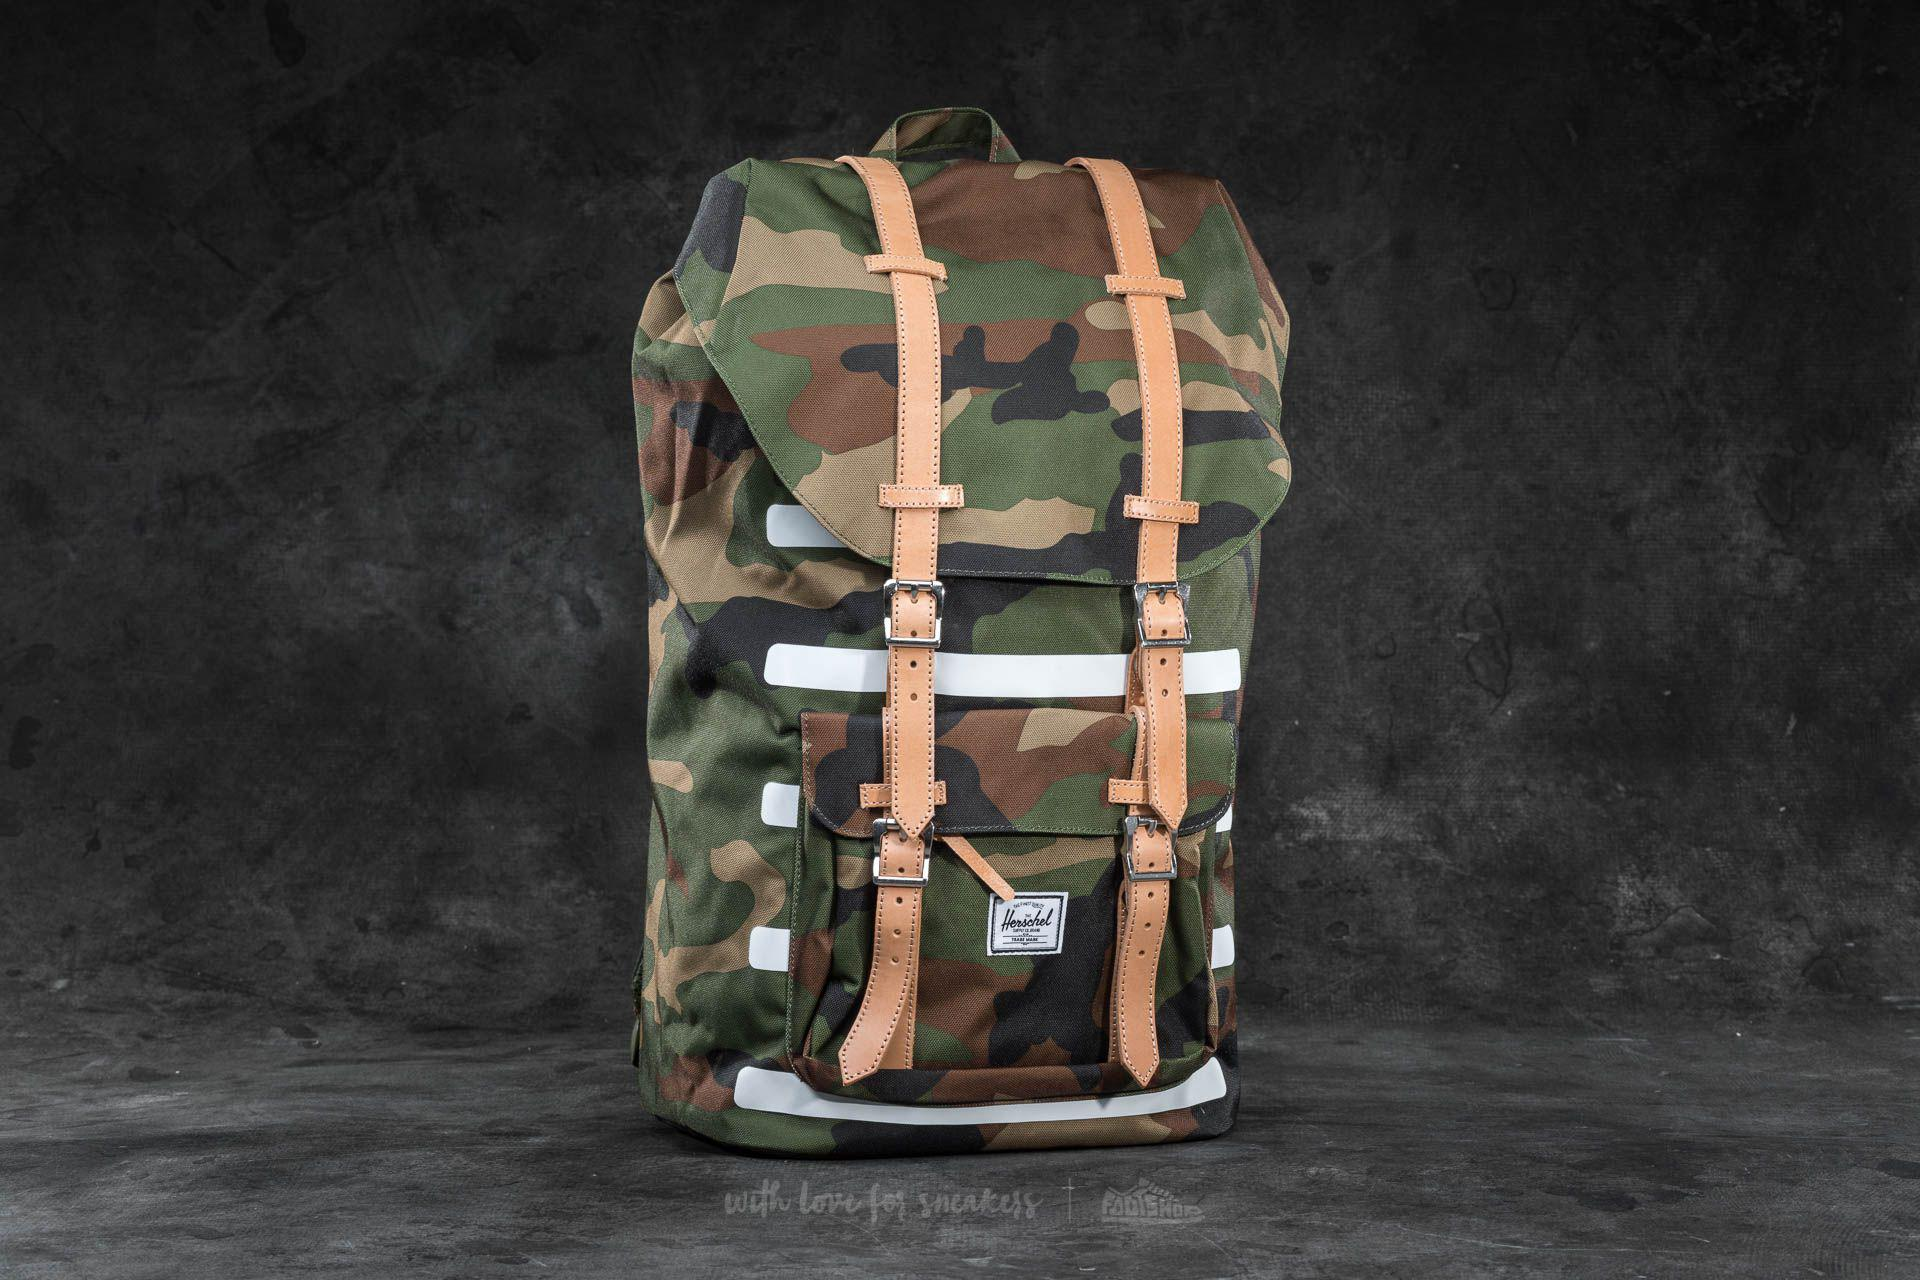 eb8db17b6765 Lyst - Herschel Supply Co. Little America Backpack Woodland Camo ...